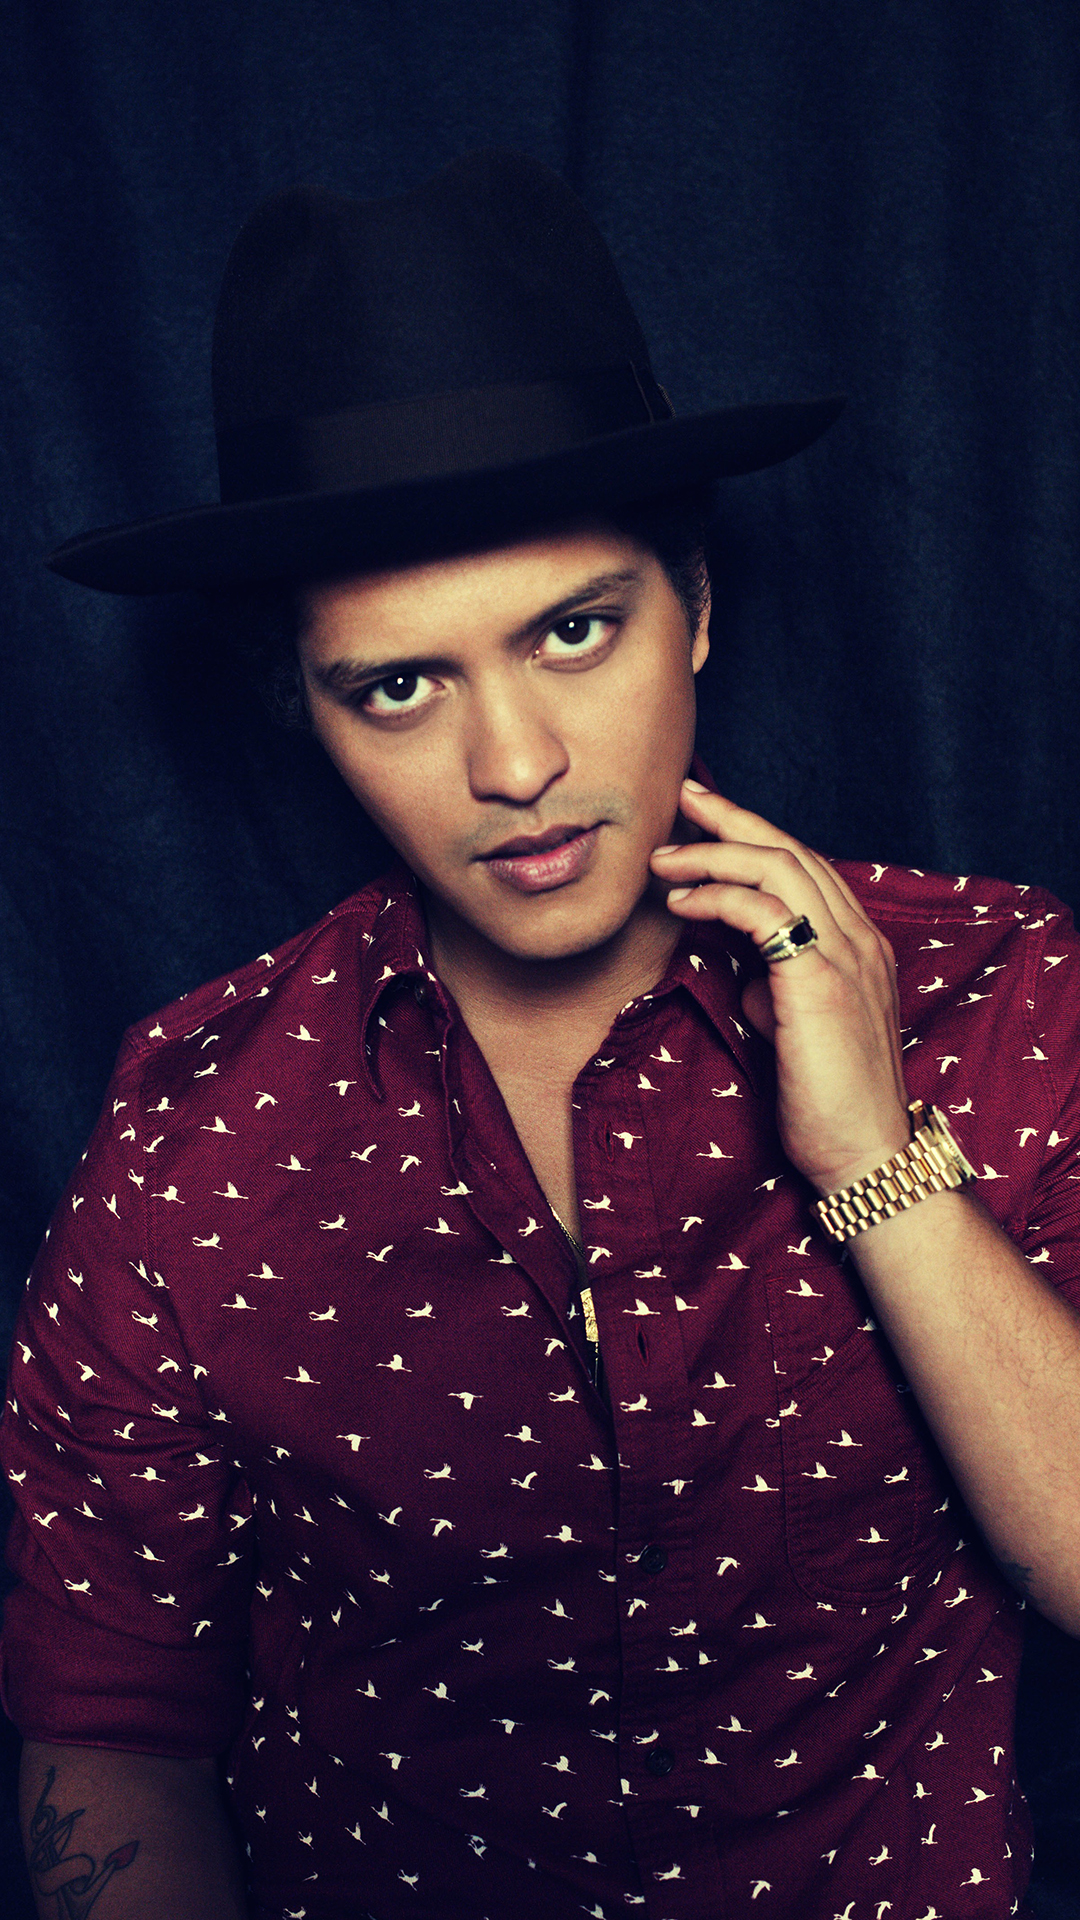 Bruno Mars htc one wallpaper